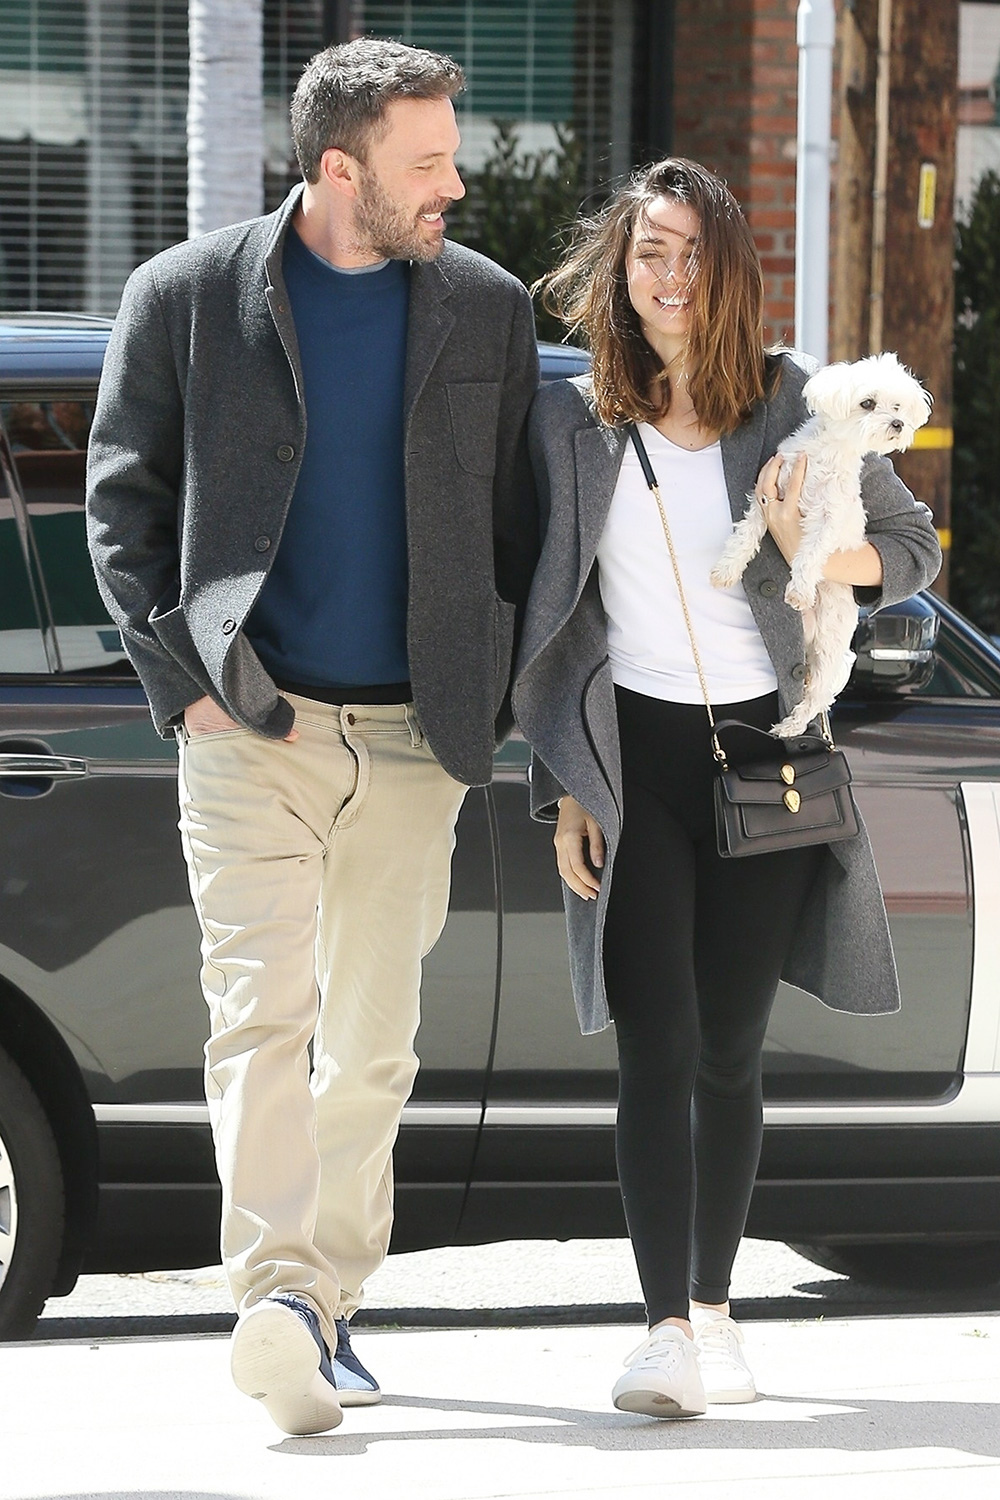 New couple Ben Affleck and Ana de Armas look happy while on a coffee run